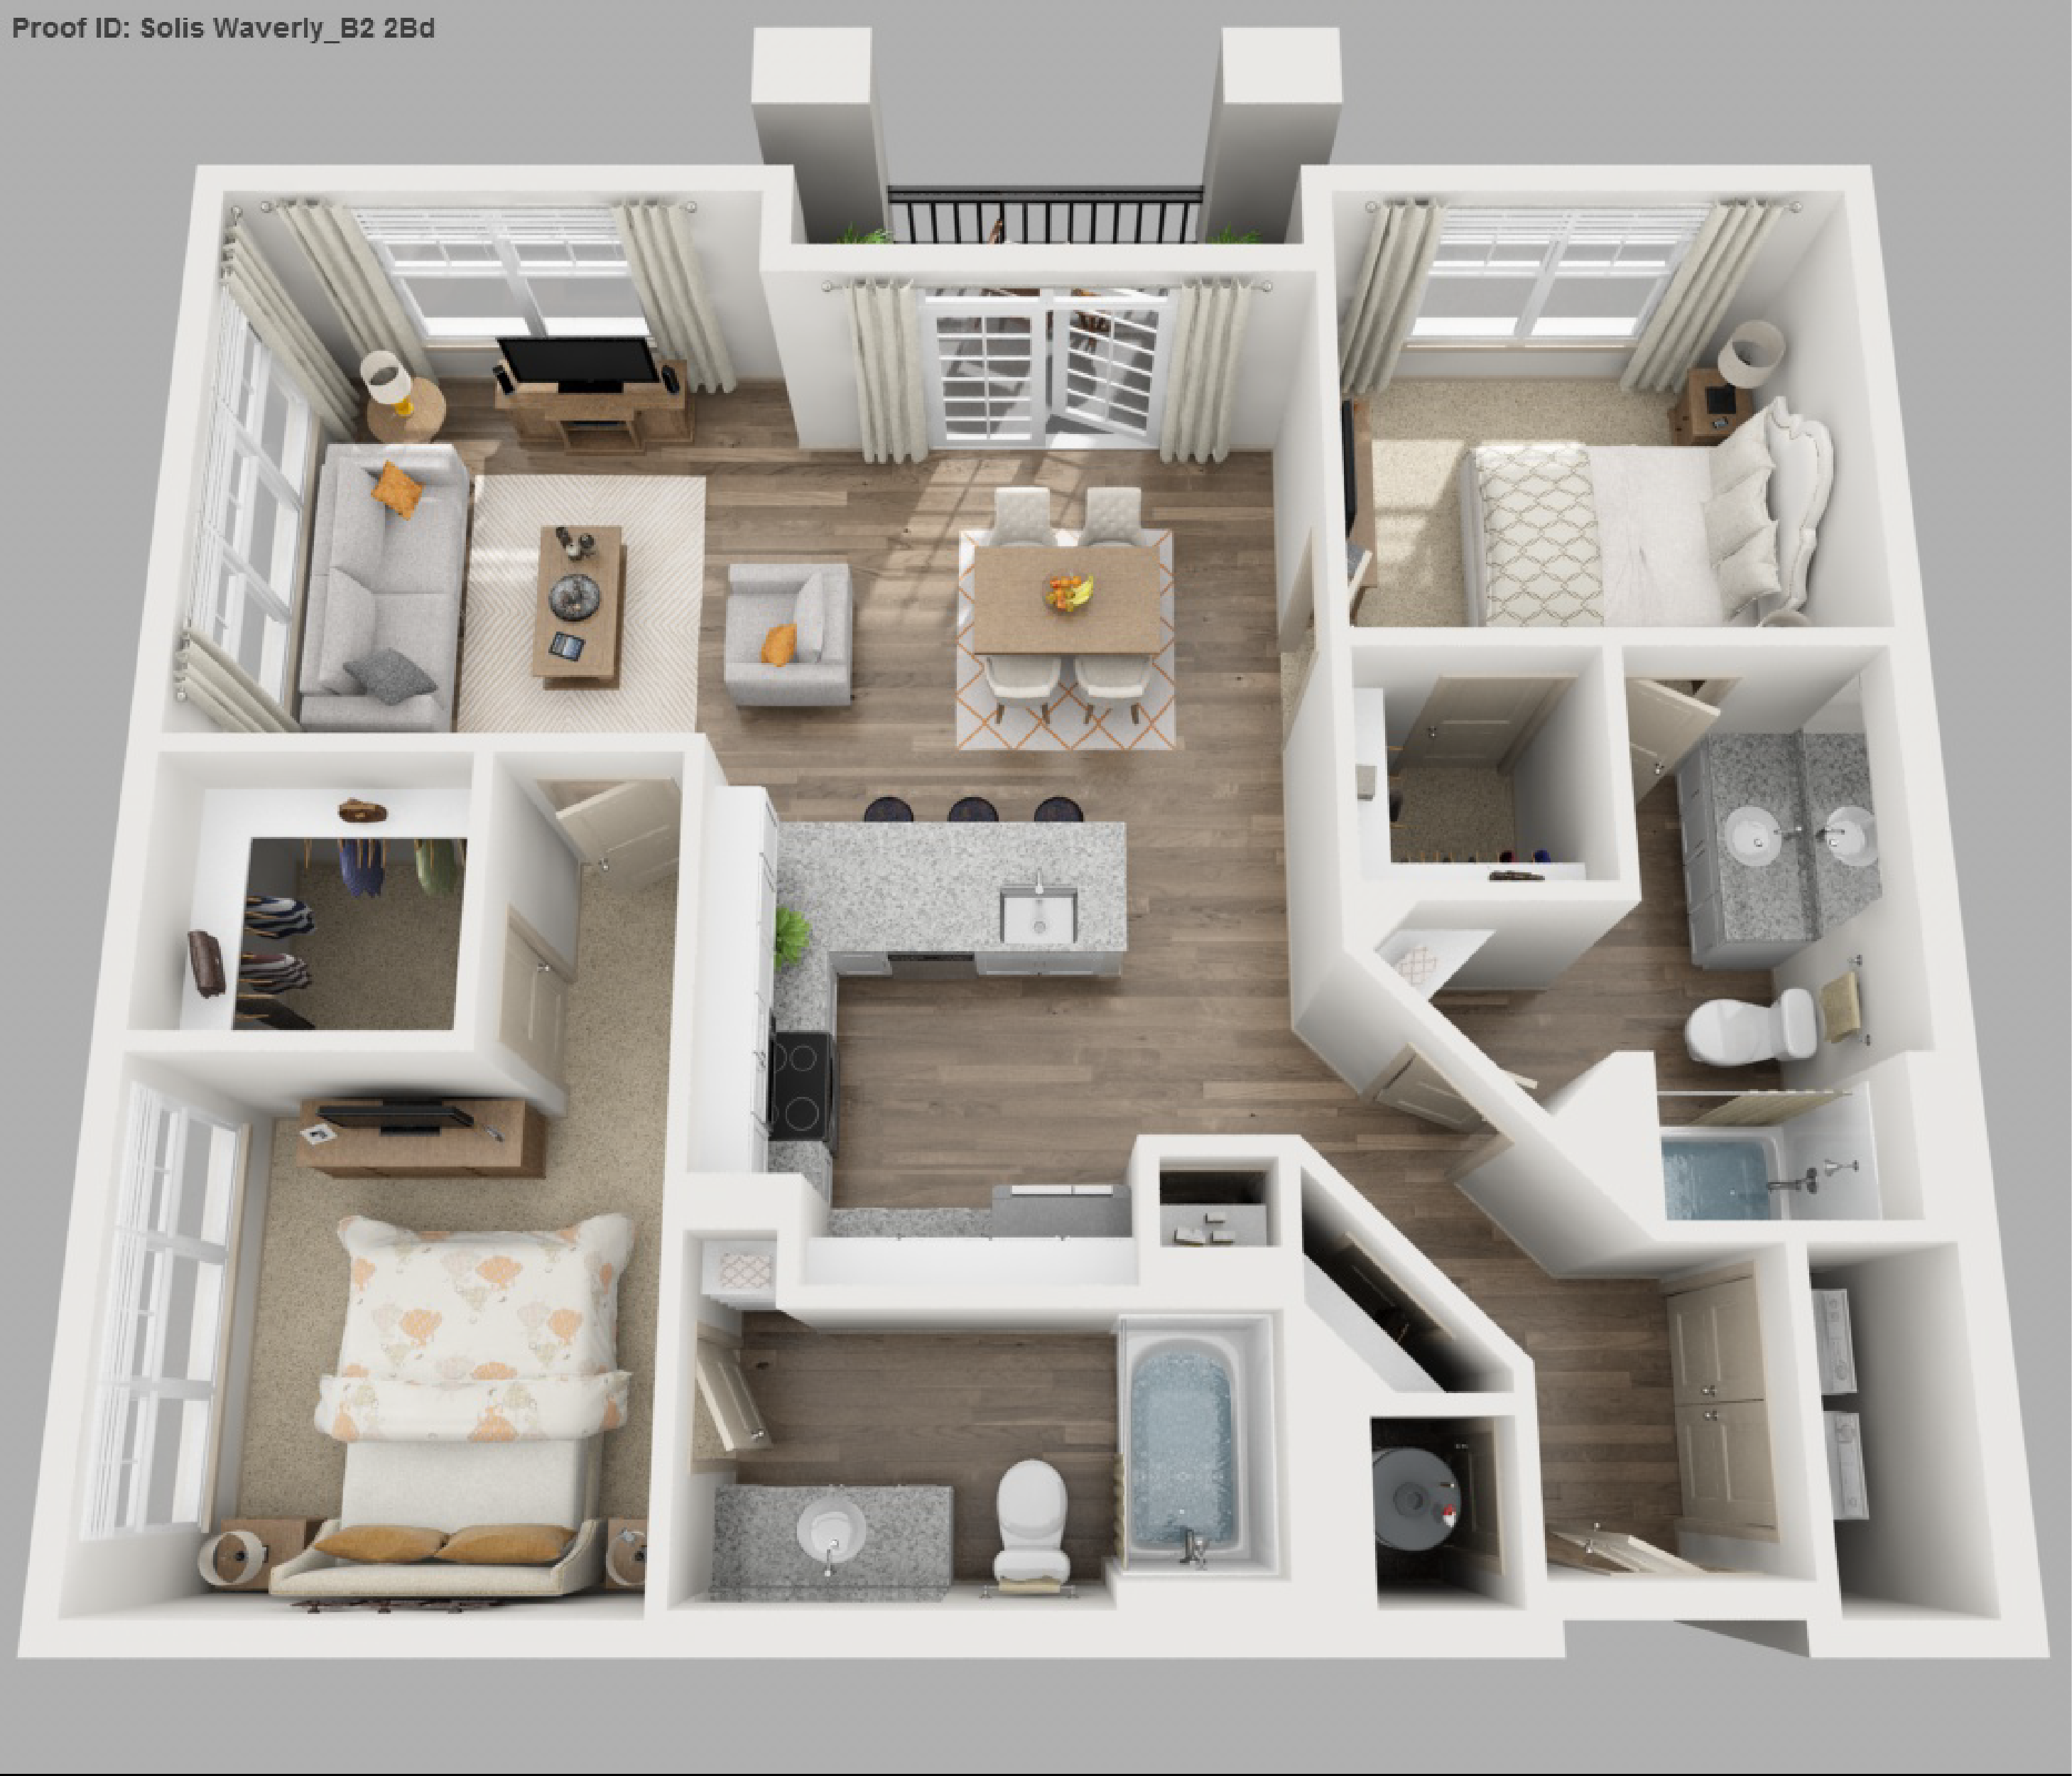 B2 2 Bedroom View Floor Plan